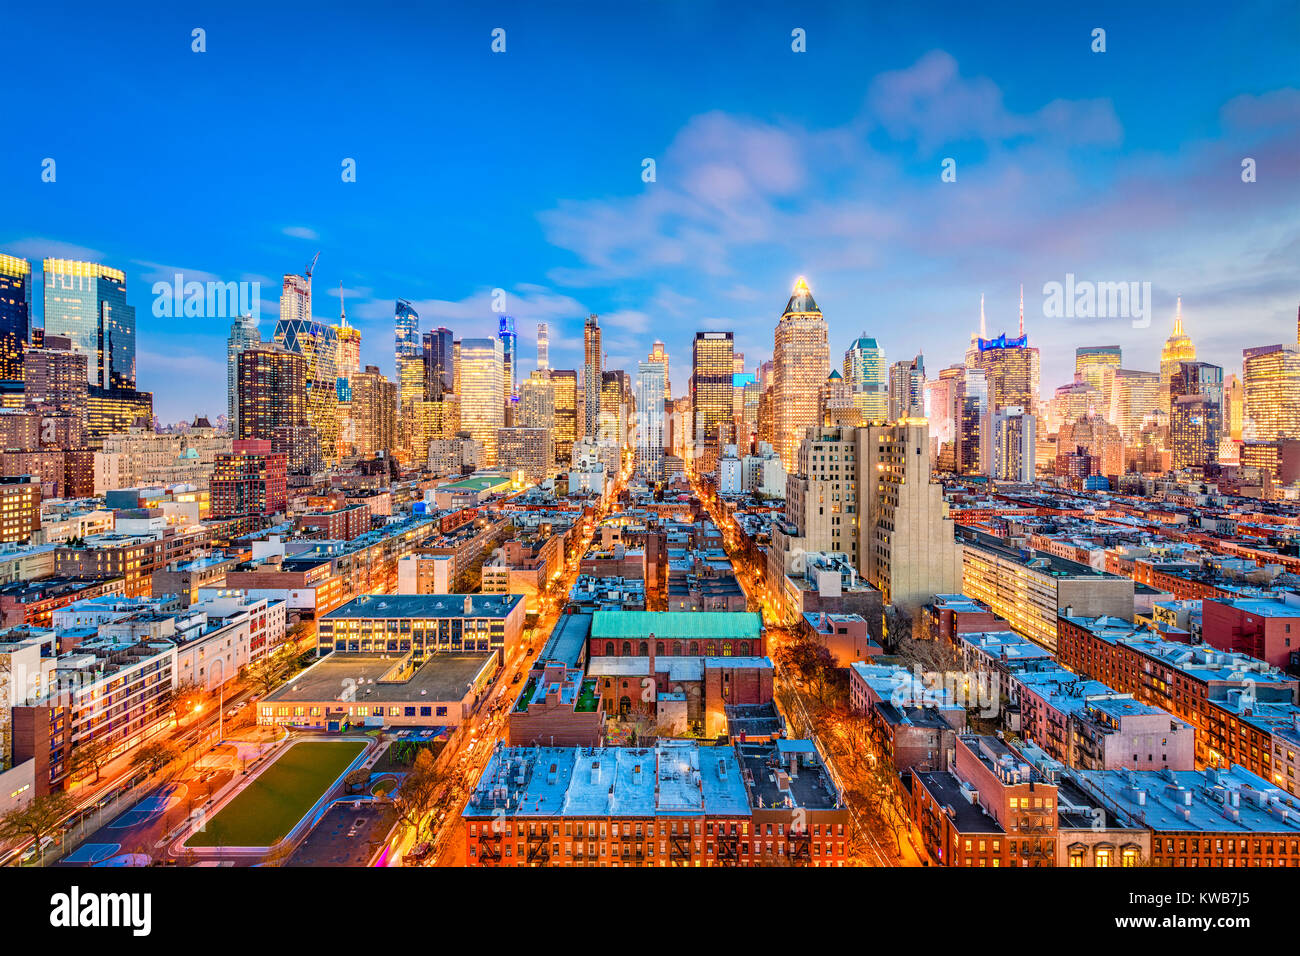 New York, New York, USA Midtown Manhattan cityscape. - Stock Image